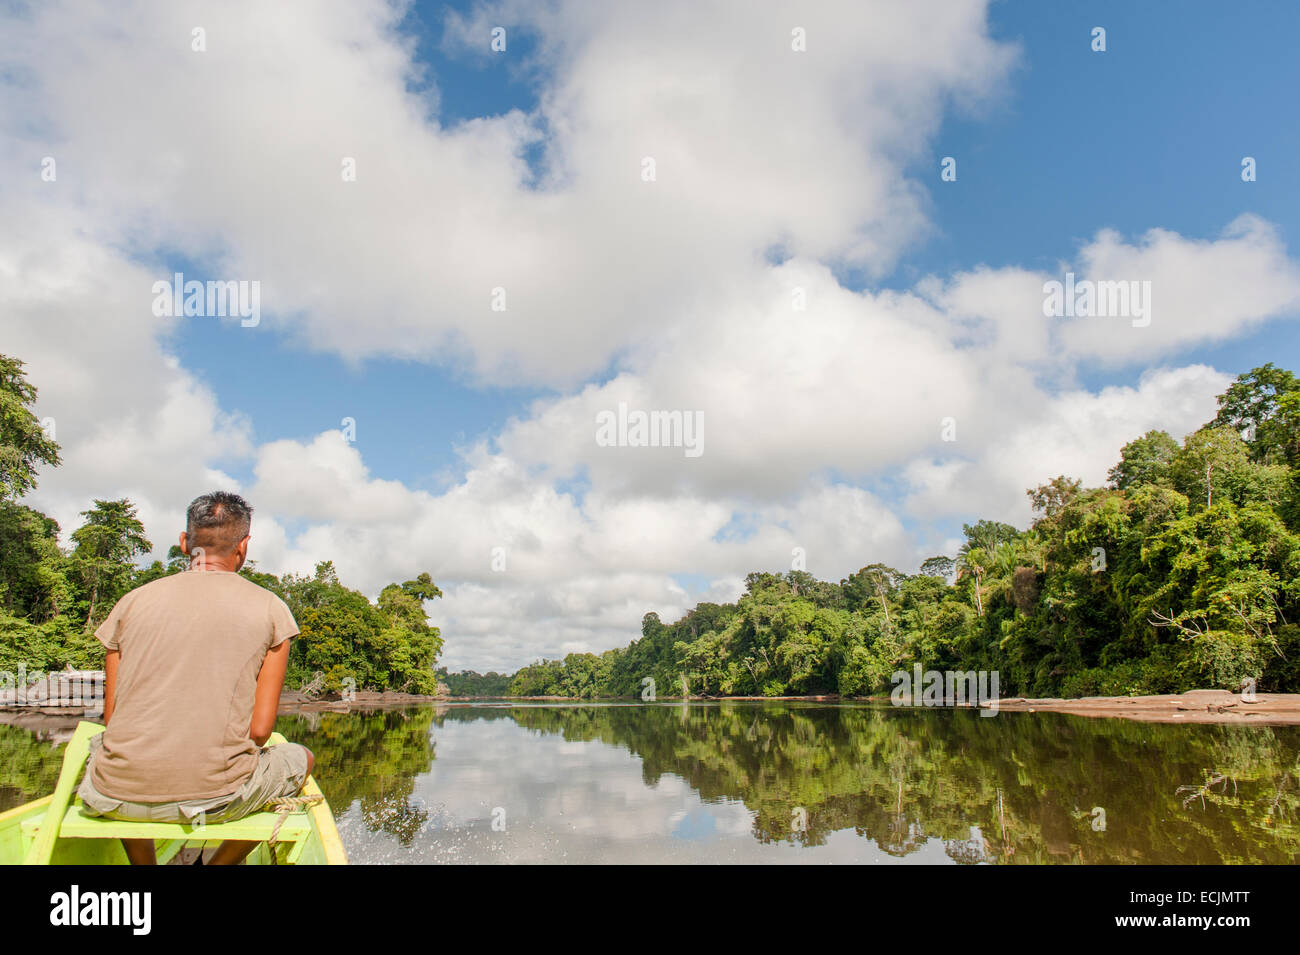 Tourguide Marcel travelling the Upper Suriname River in a traditional canoe, Suriname - Stock Image